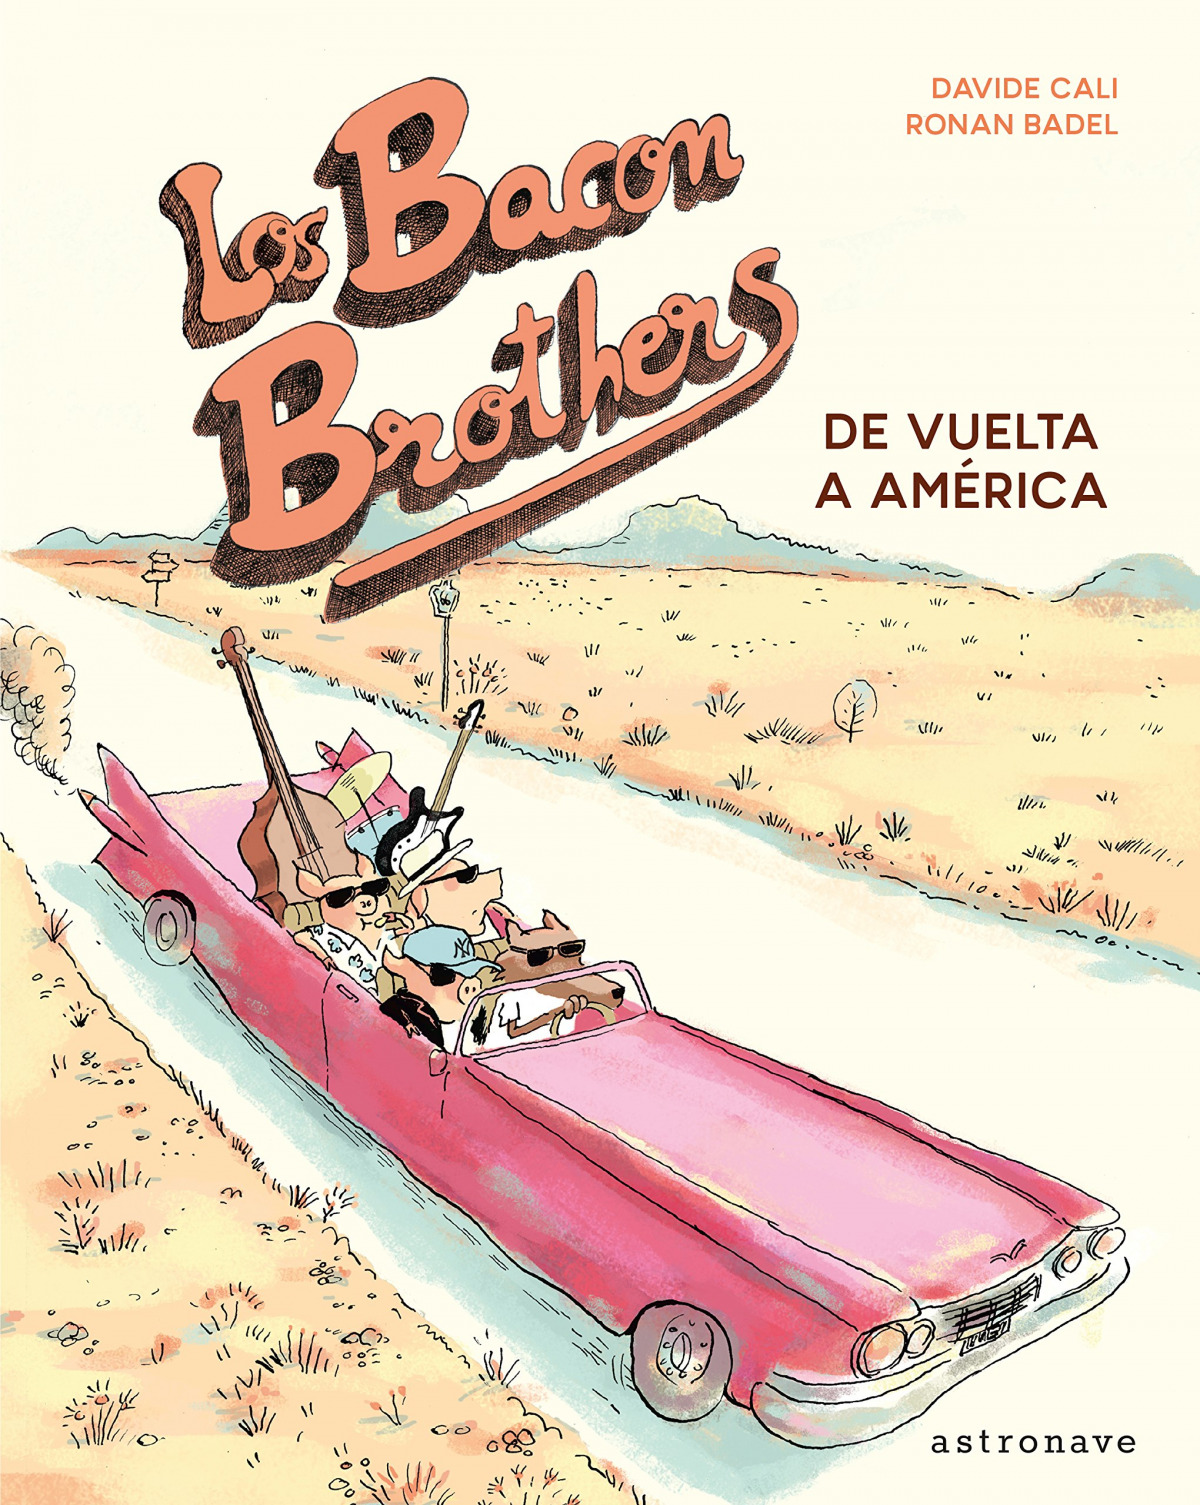 LOS BACON BROTHERS DE VUELTA A AM�RICA